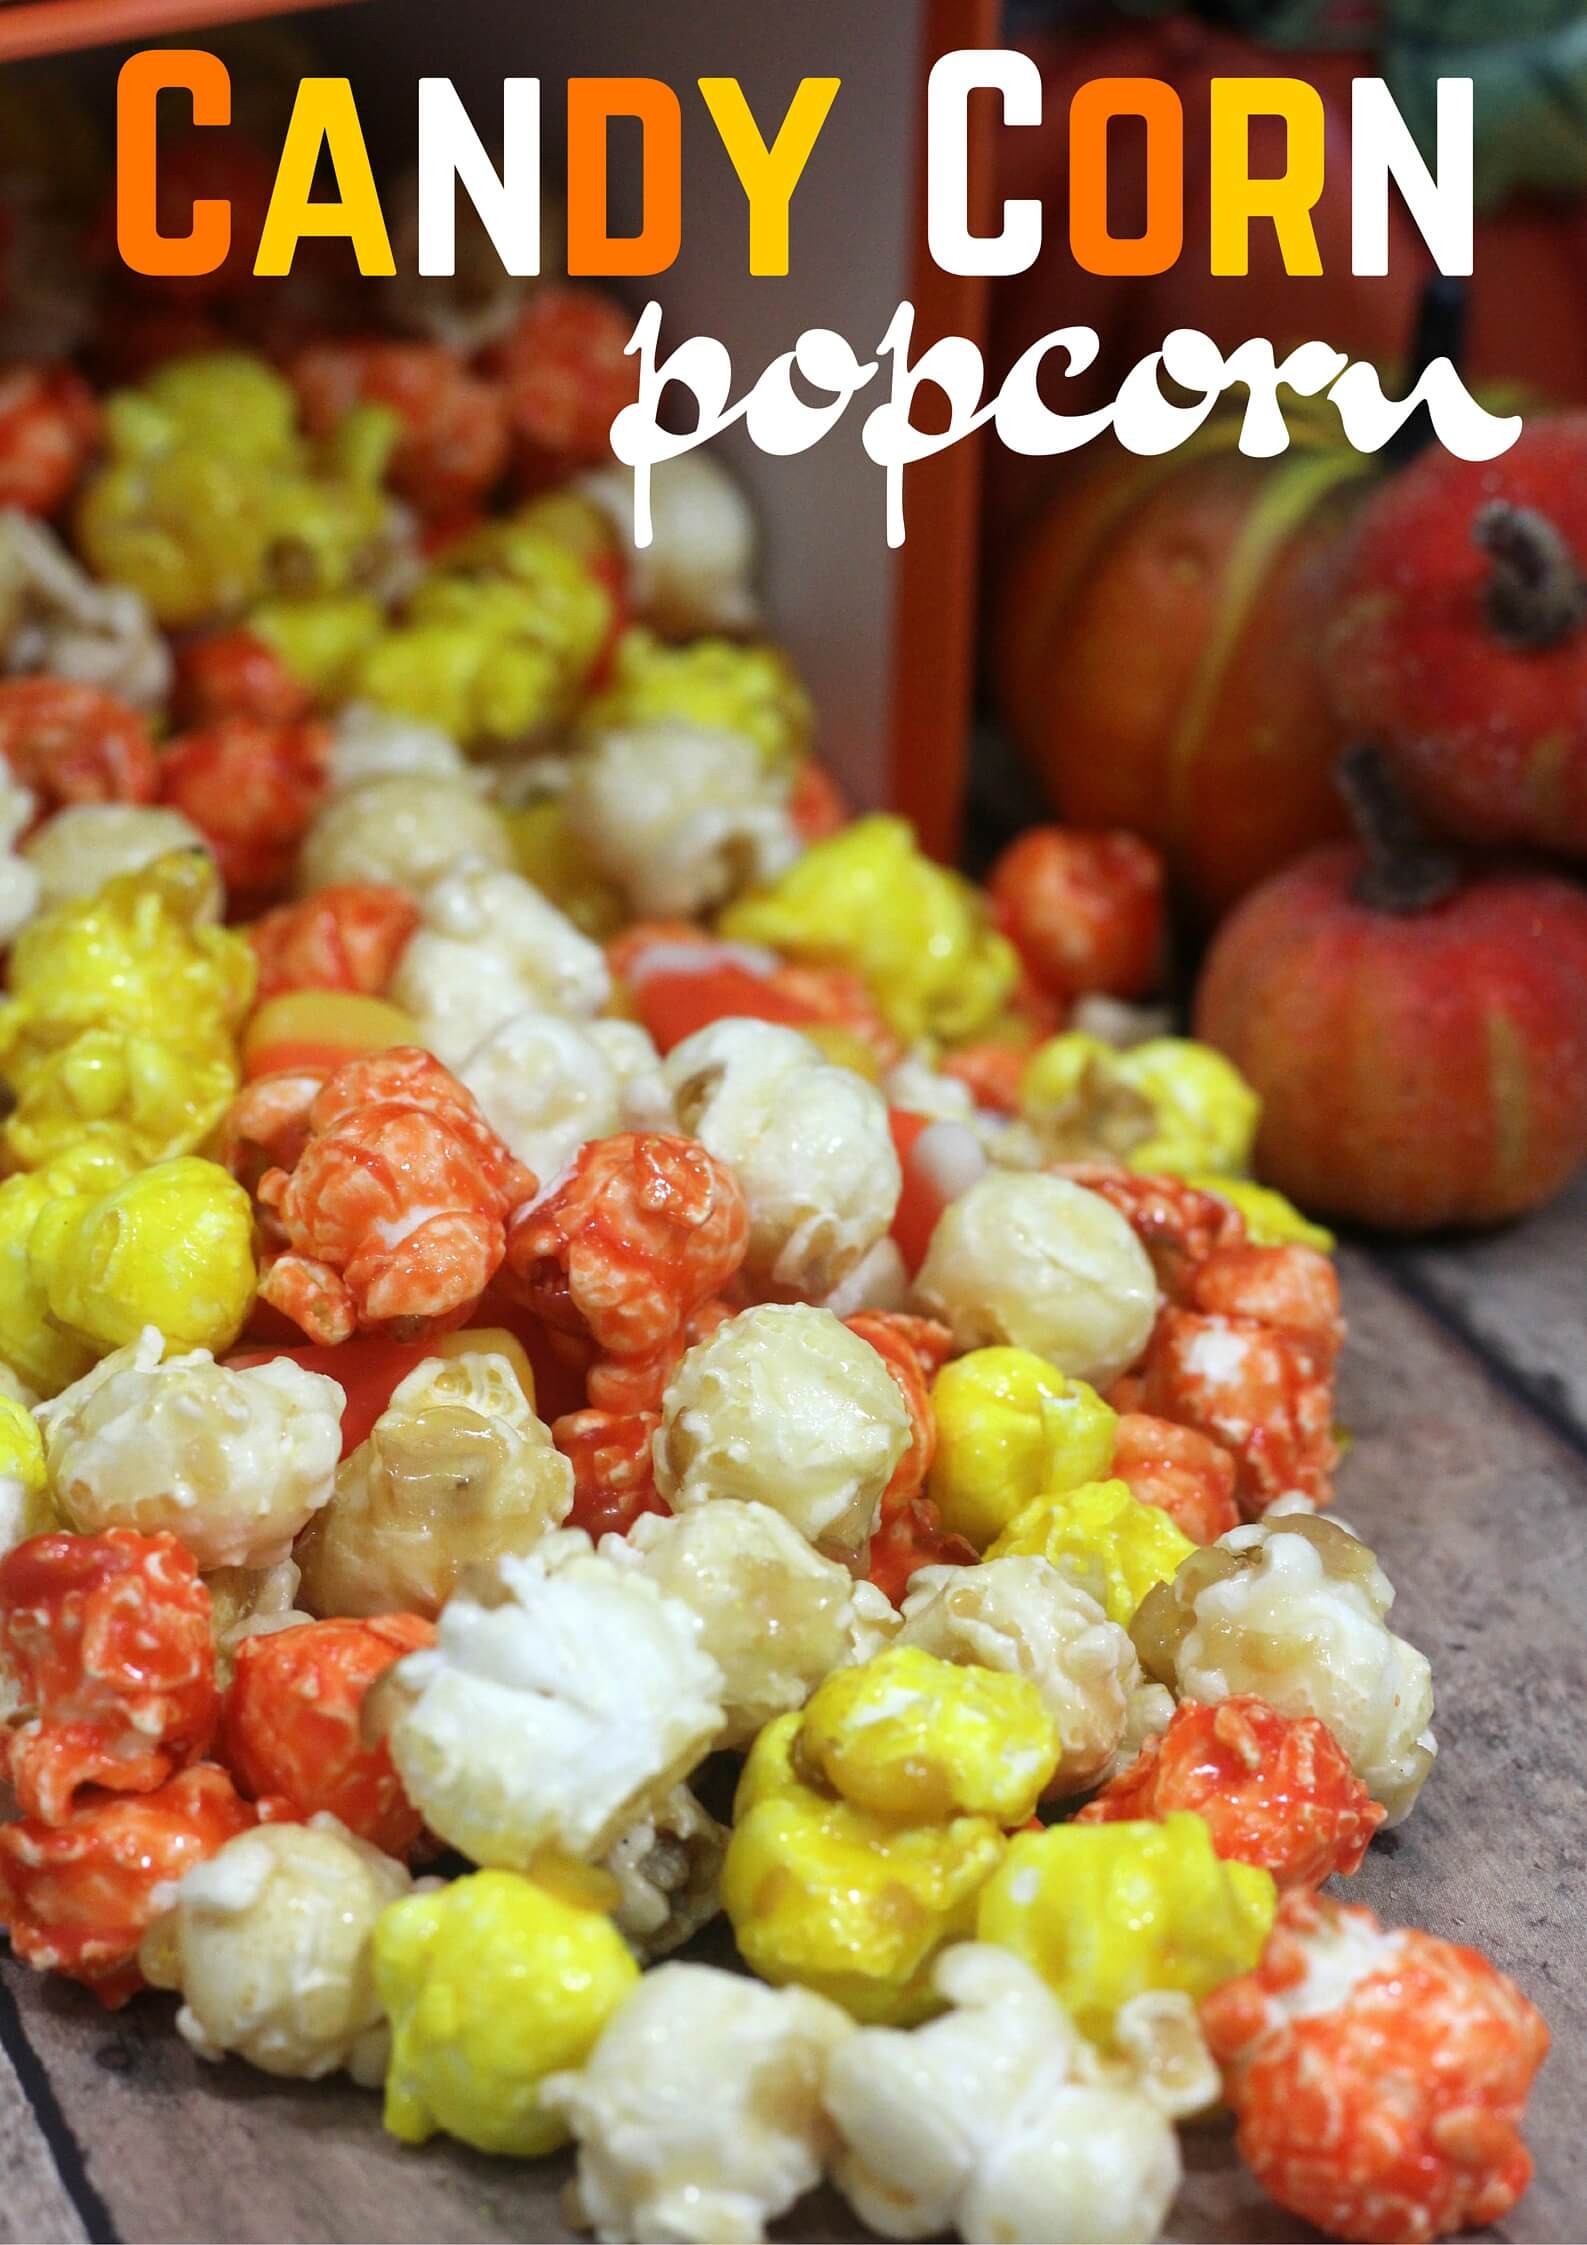 Candy Corn Ingredients  Candy Popcorn Recipe